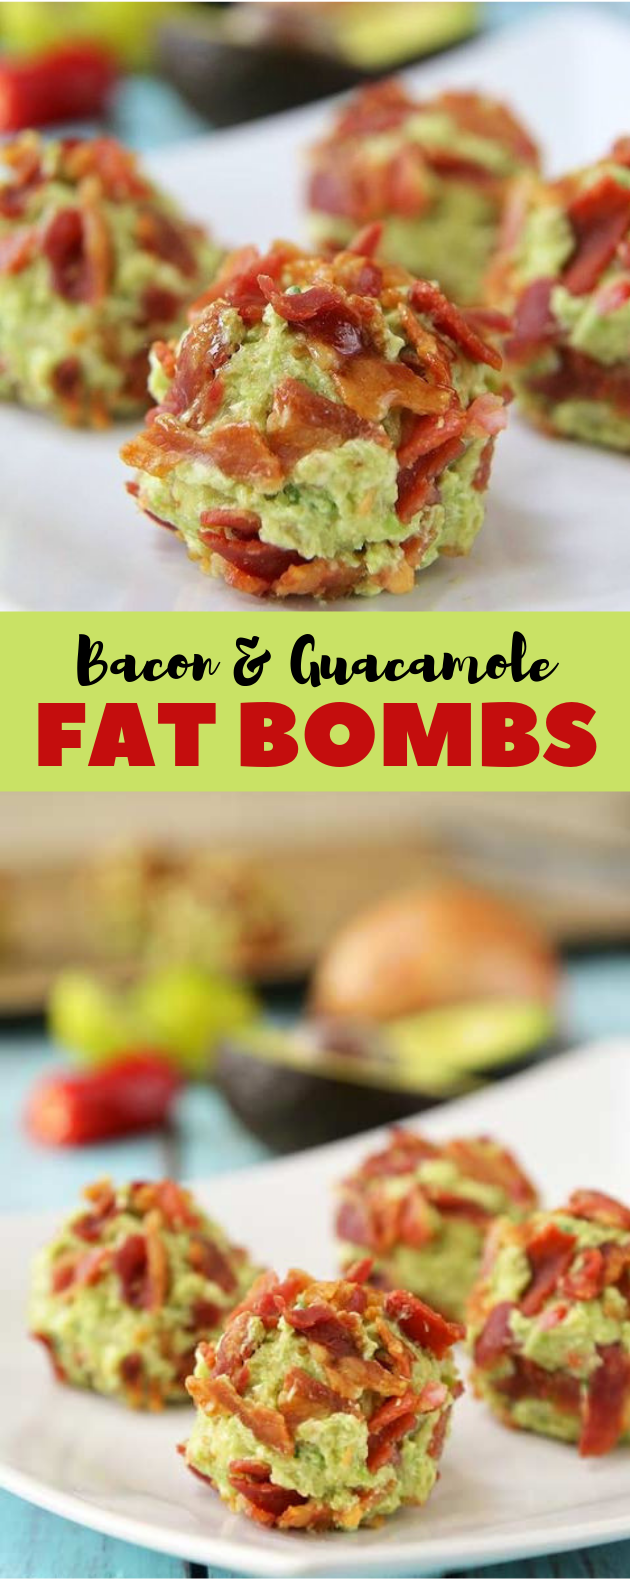 Bacon & Guacamole Fat Bombs #Keto #LowCarb